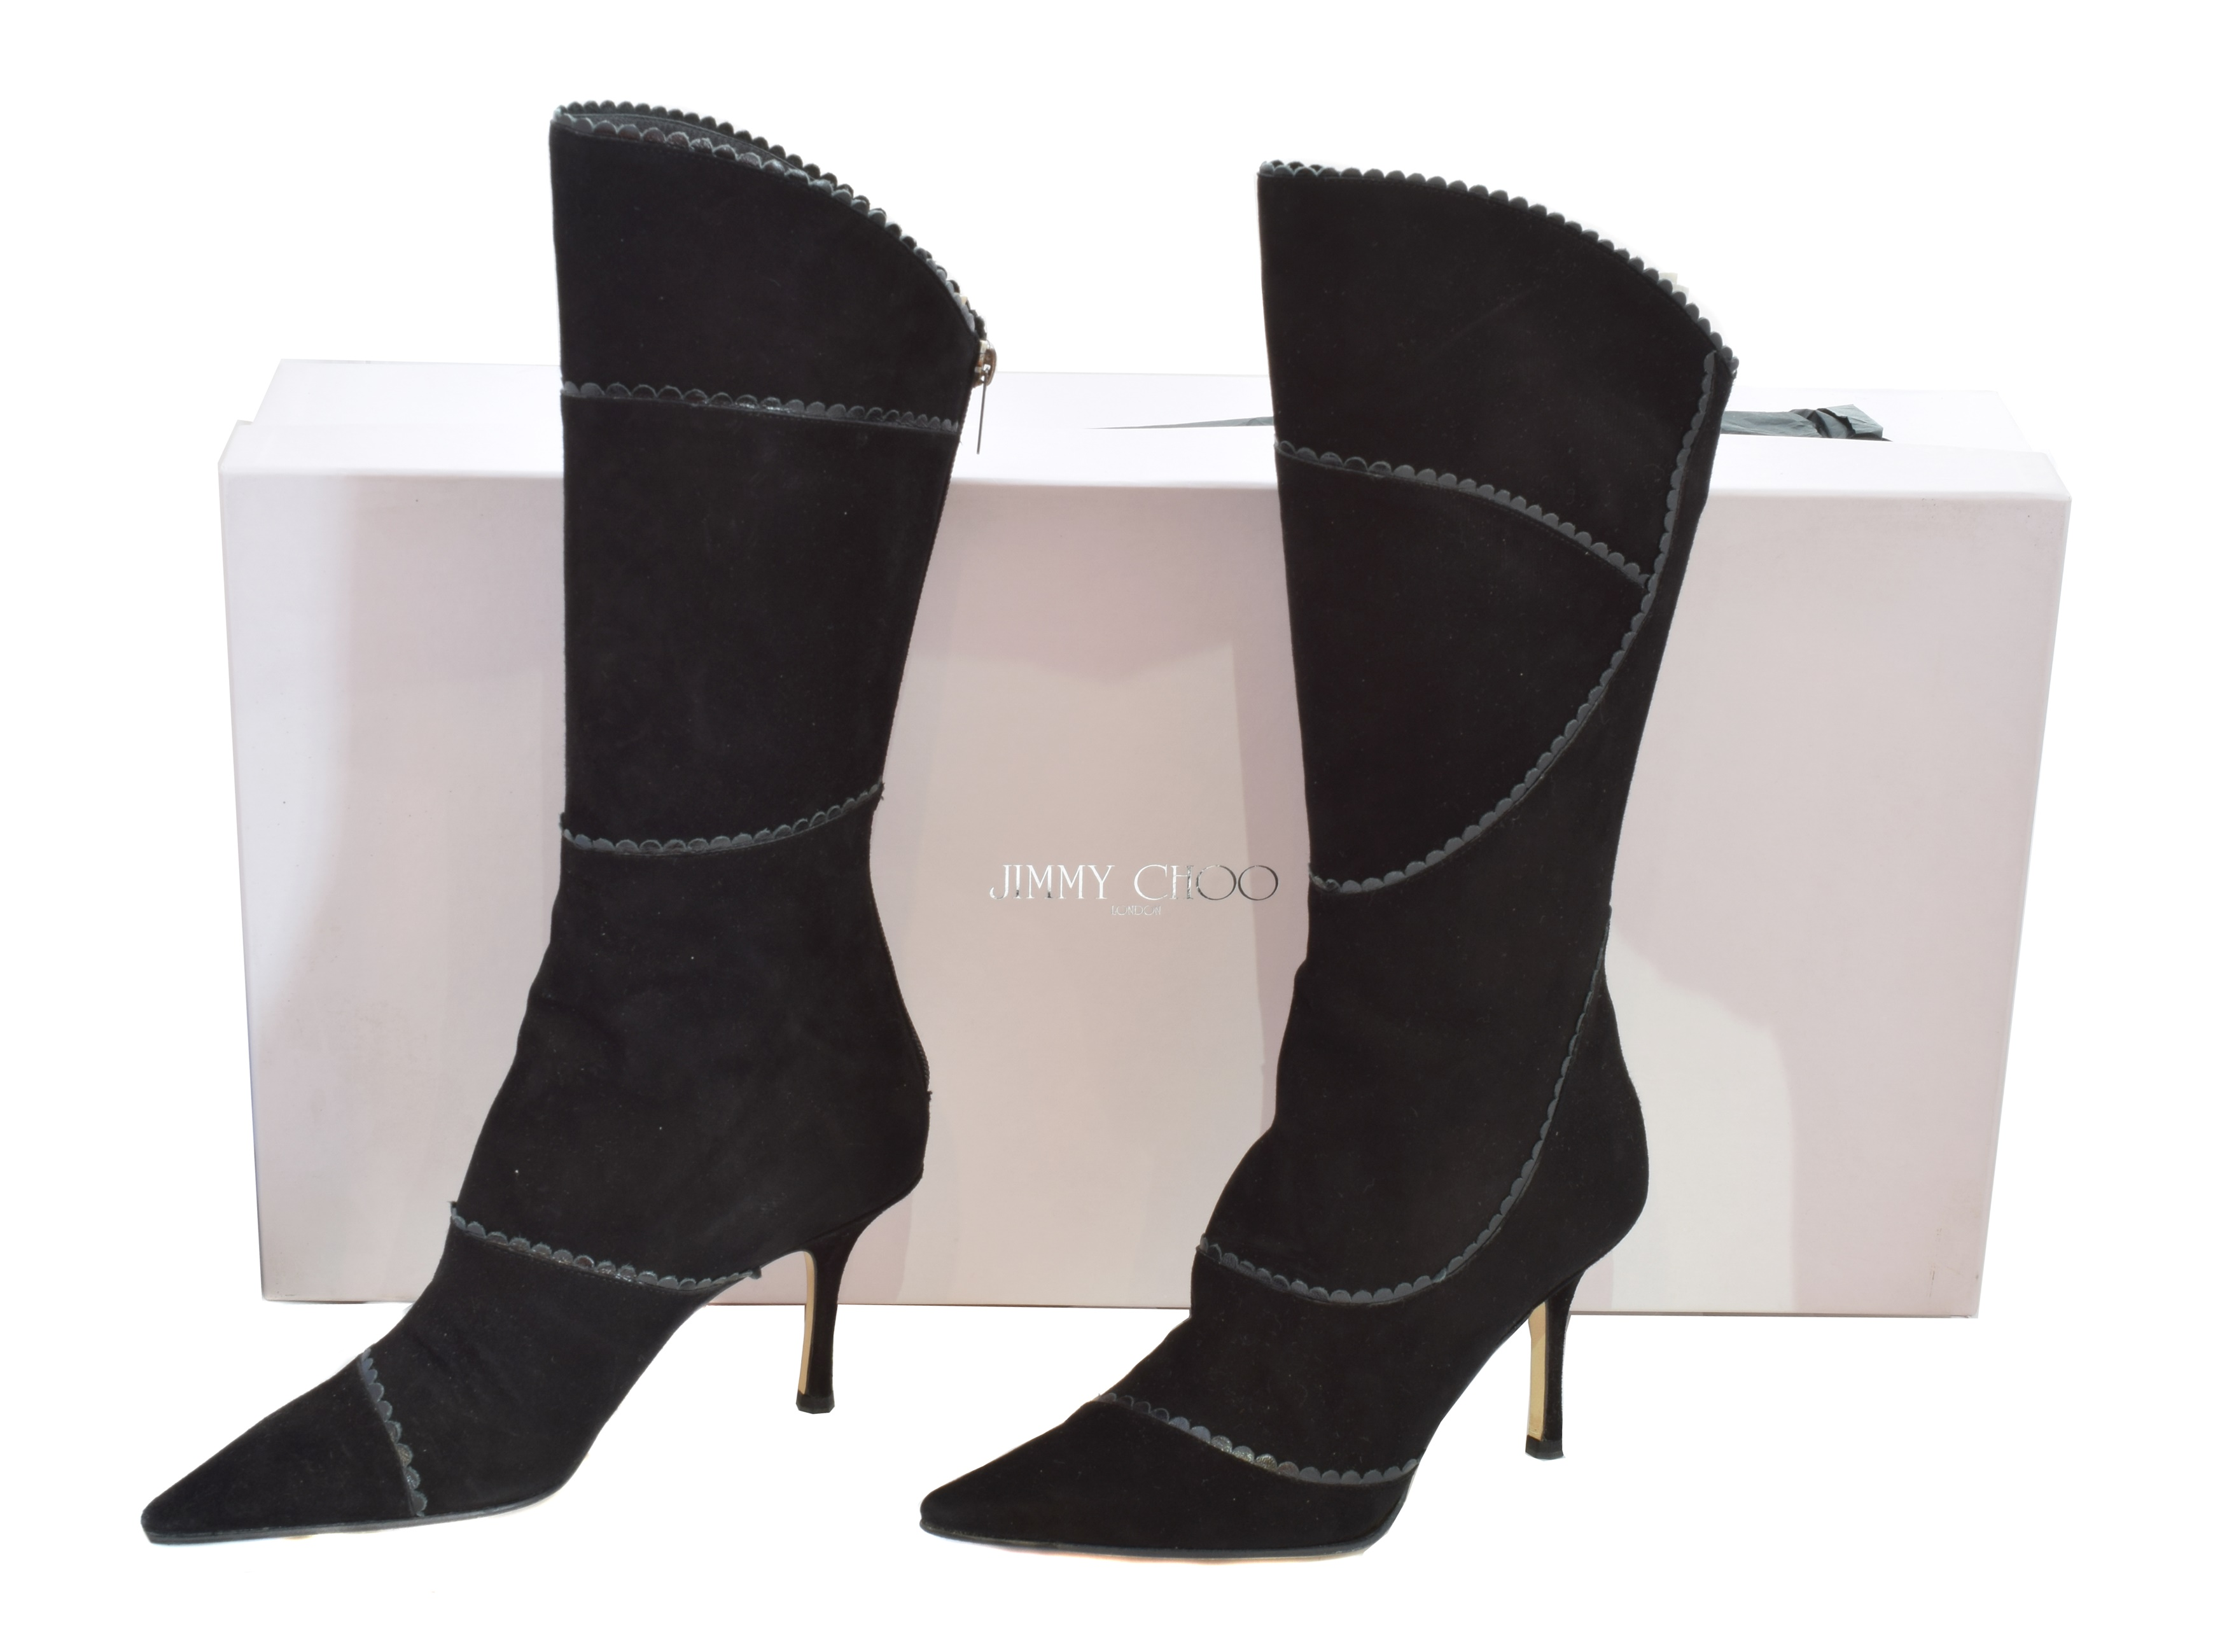 Jimmy Choo black suede heeled boots with box